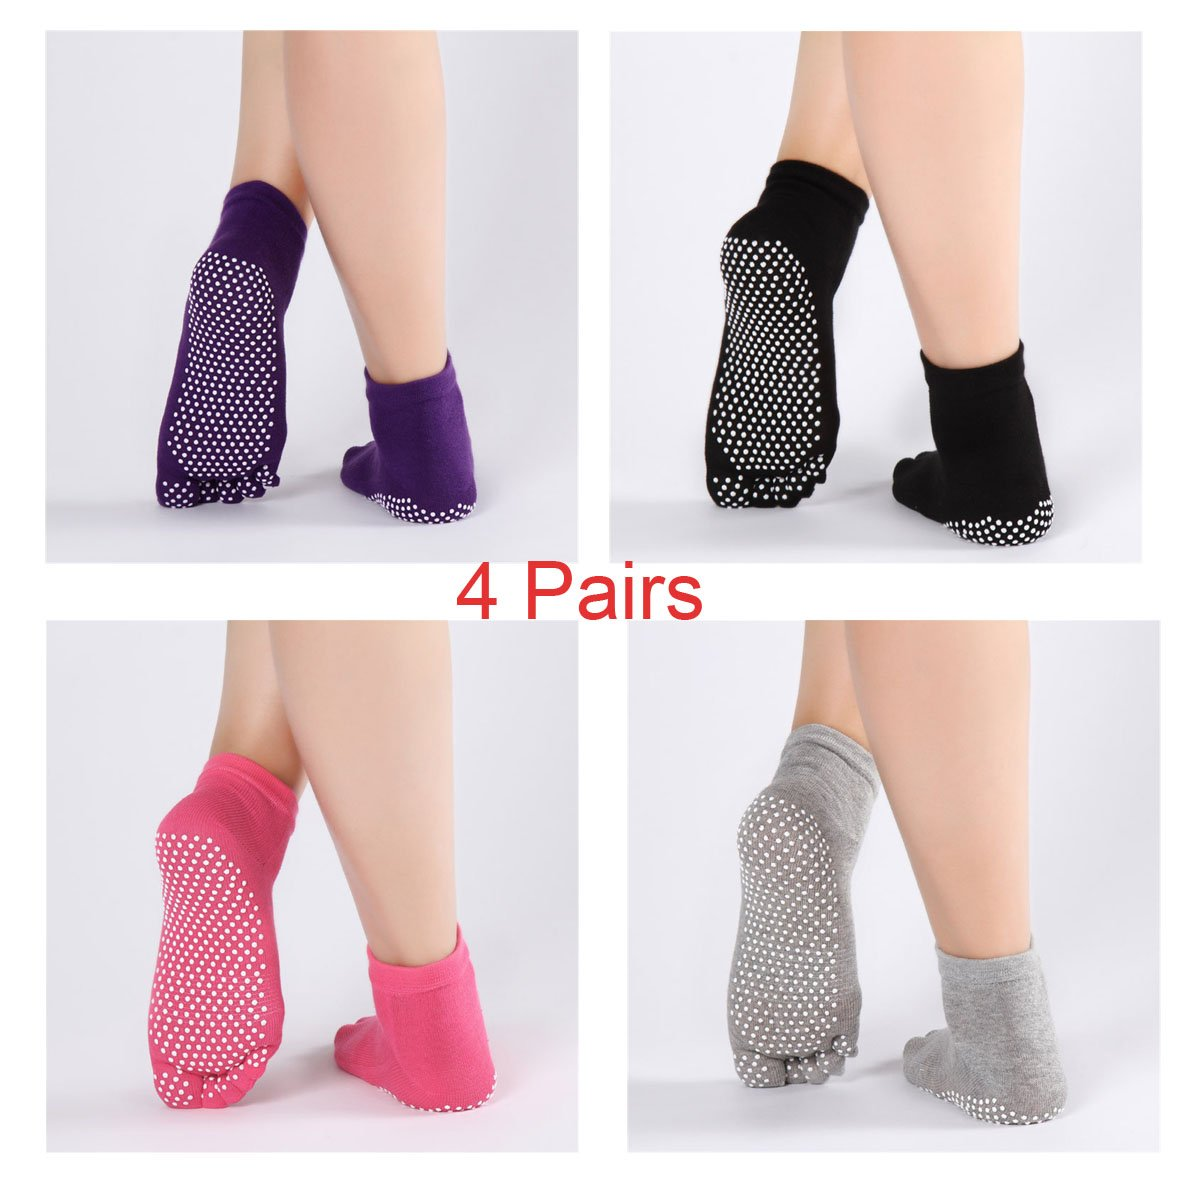 Yoga Socks Non Slip Skid Pilates Barre with Grips Cotton Socks with Toes for Women 4 Pack New Style